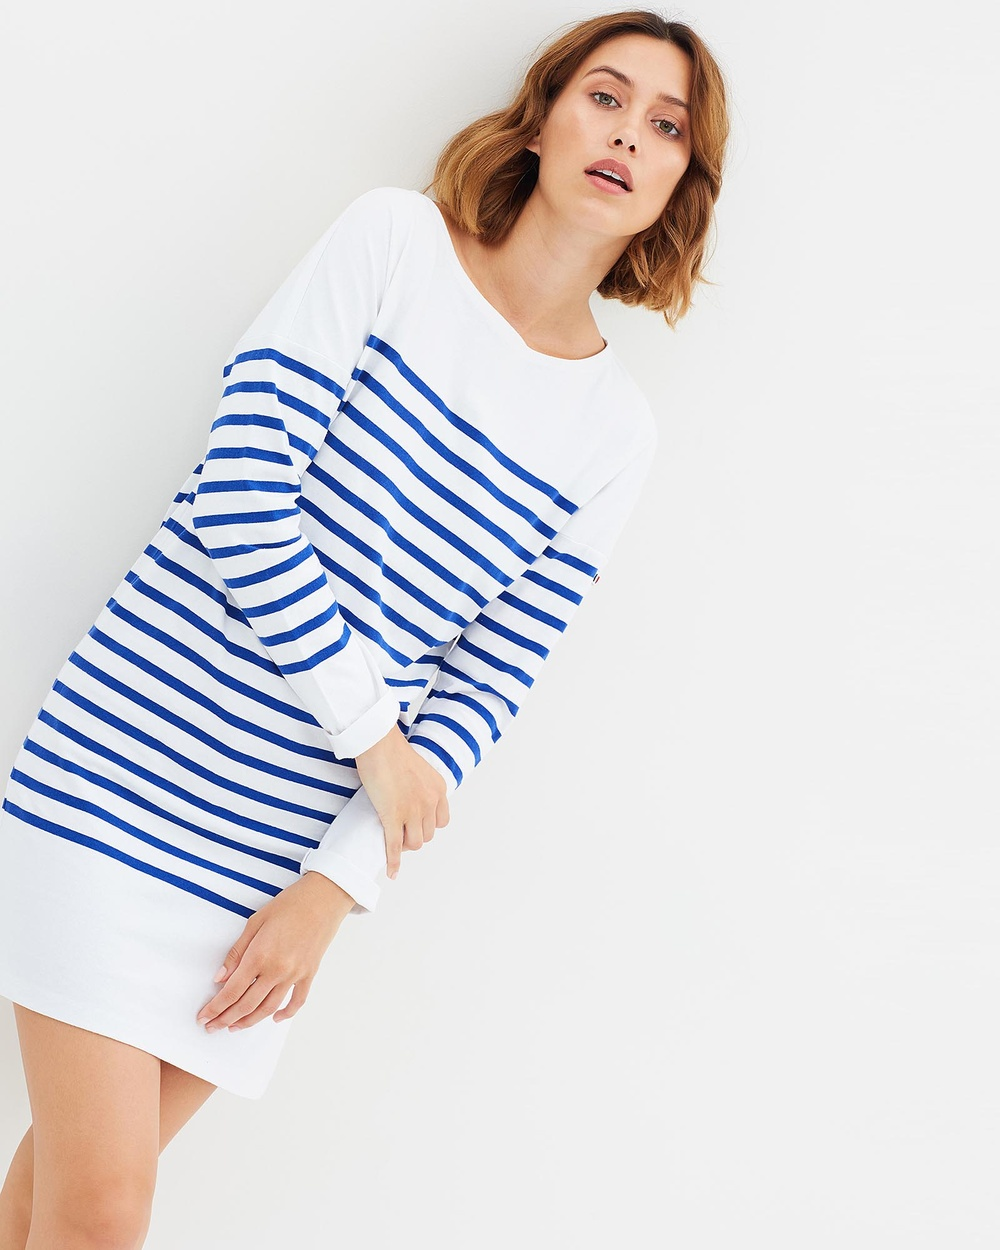 Maison Scotch Breton Striped Sweat Dress Dresses White & Blue Breton Striped Sweat Dress